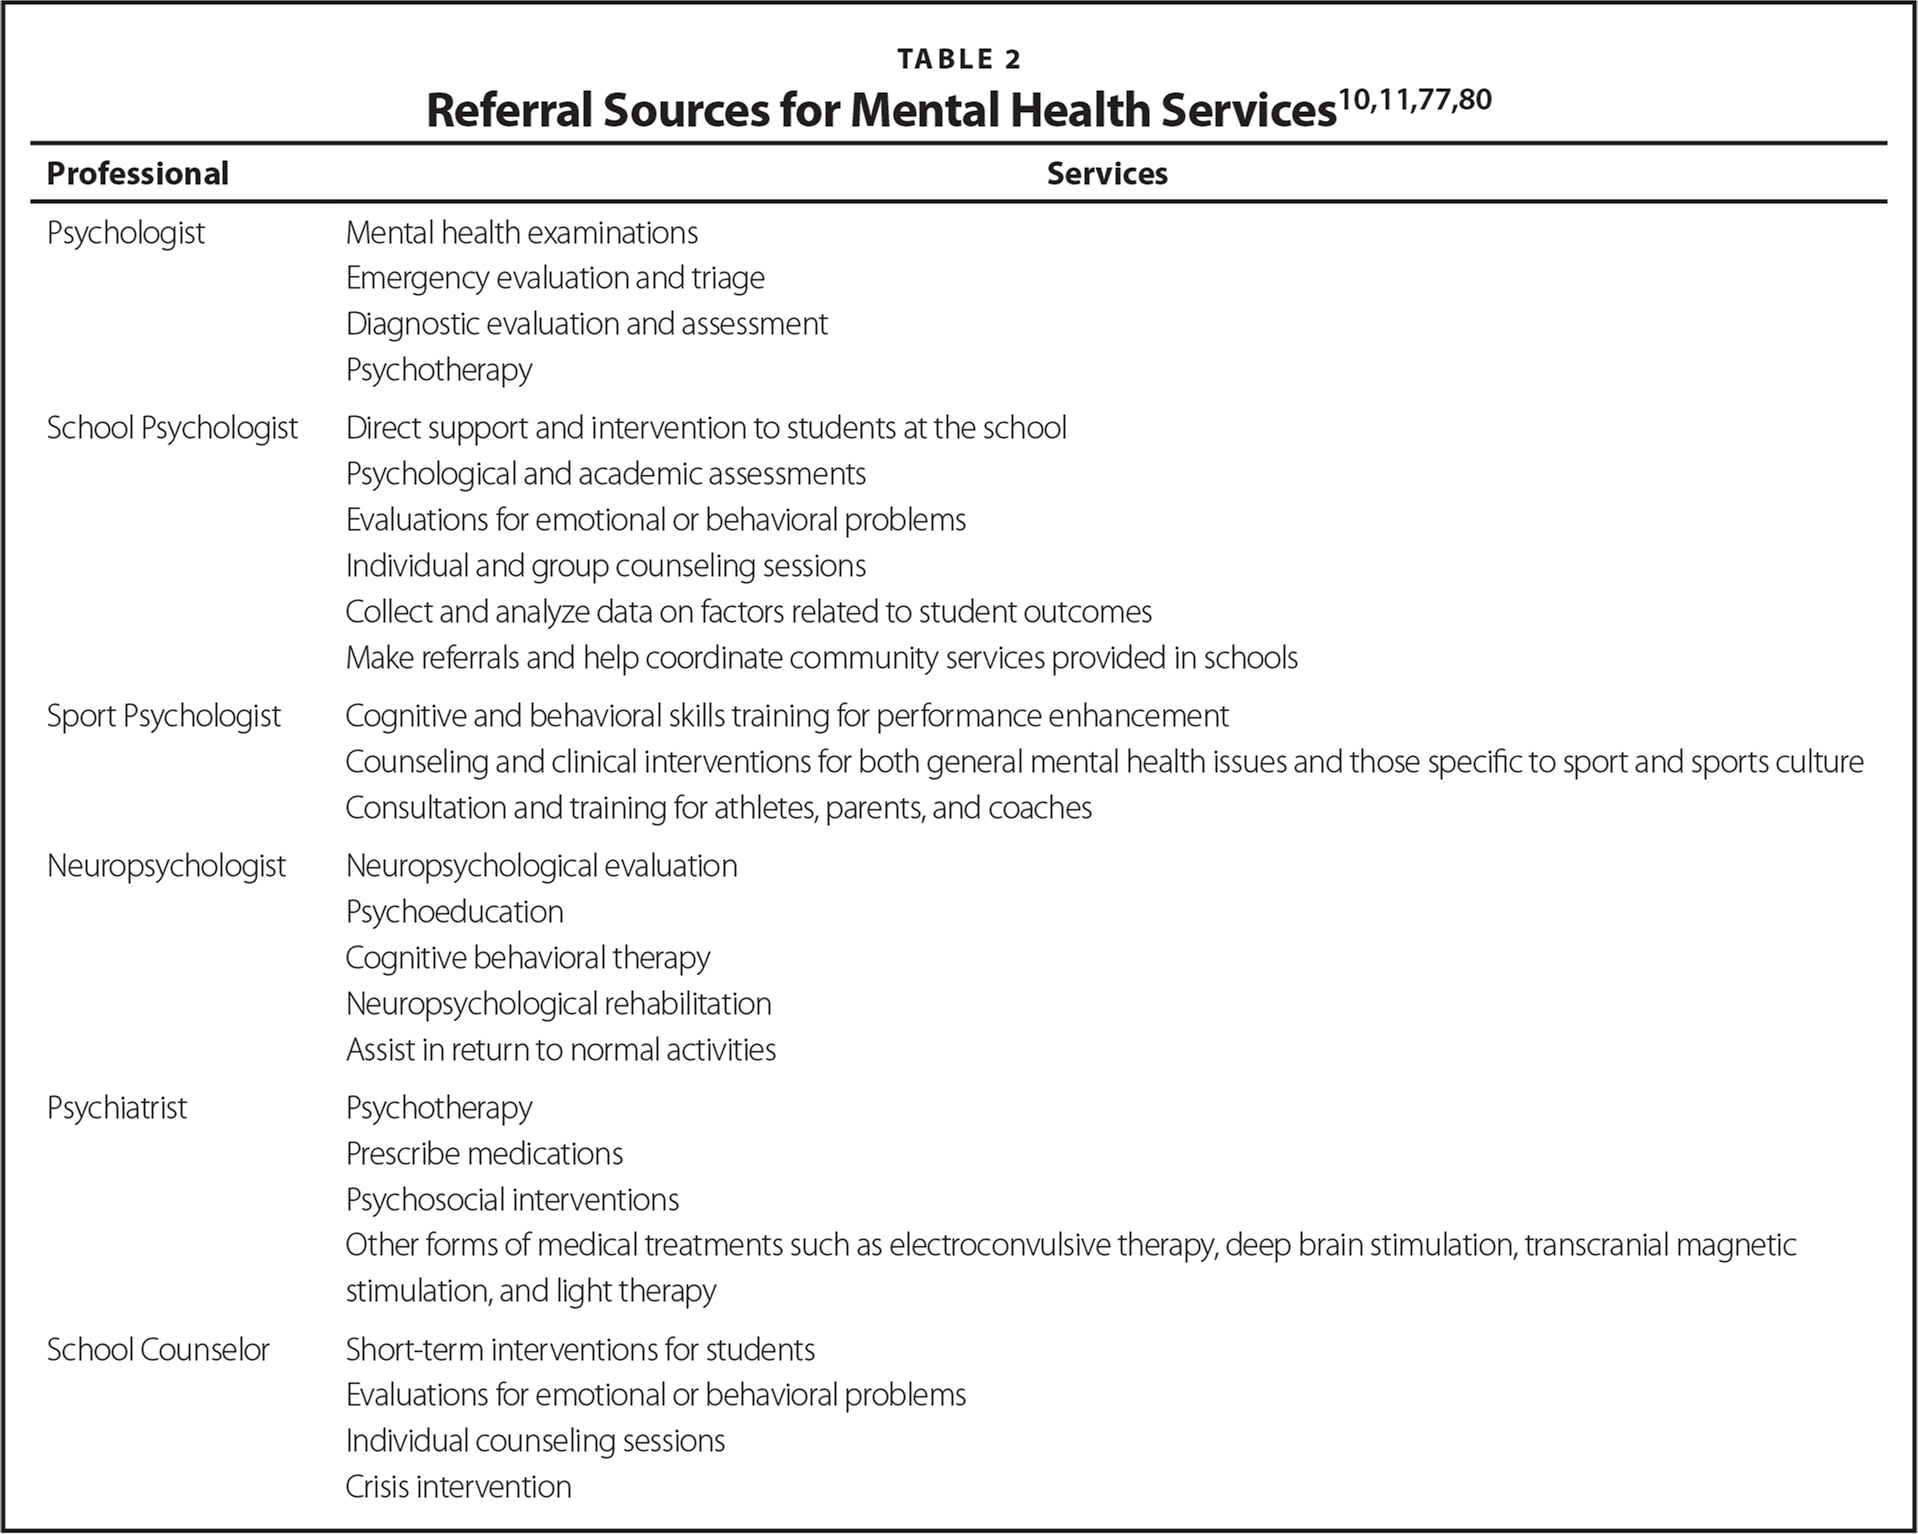 Referral Sources for Mental Health Services10,11,77,80